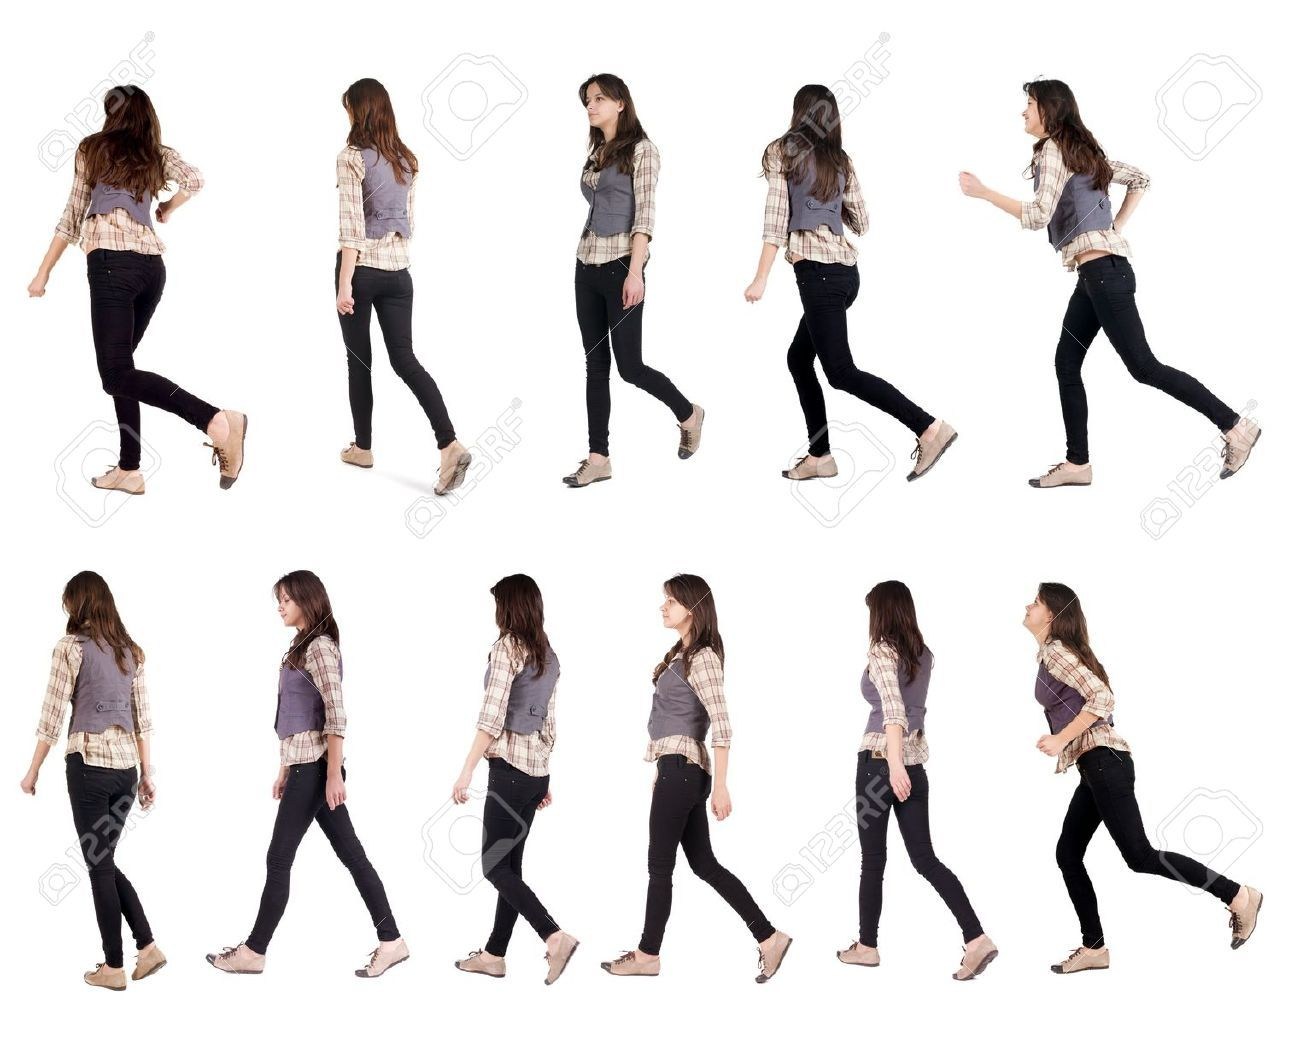 Pin By Ys Uhh On The Body In Motion Walking Poses Running Women Pose Reference